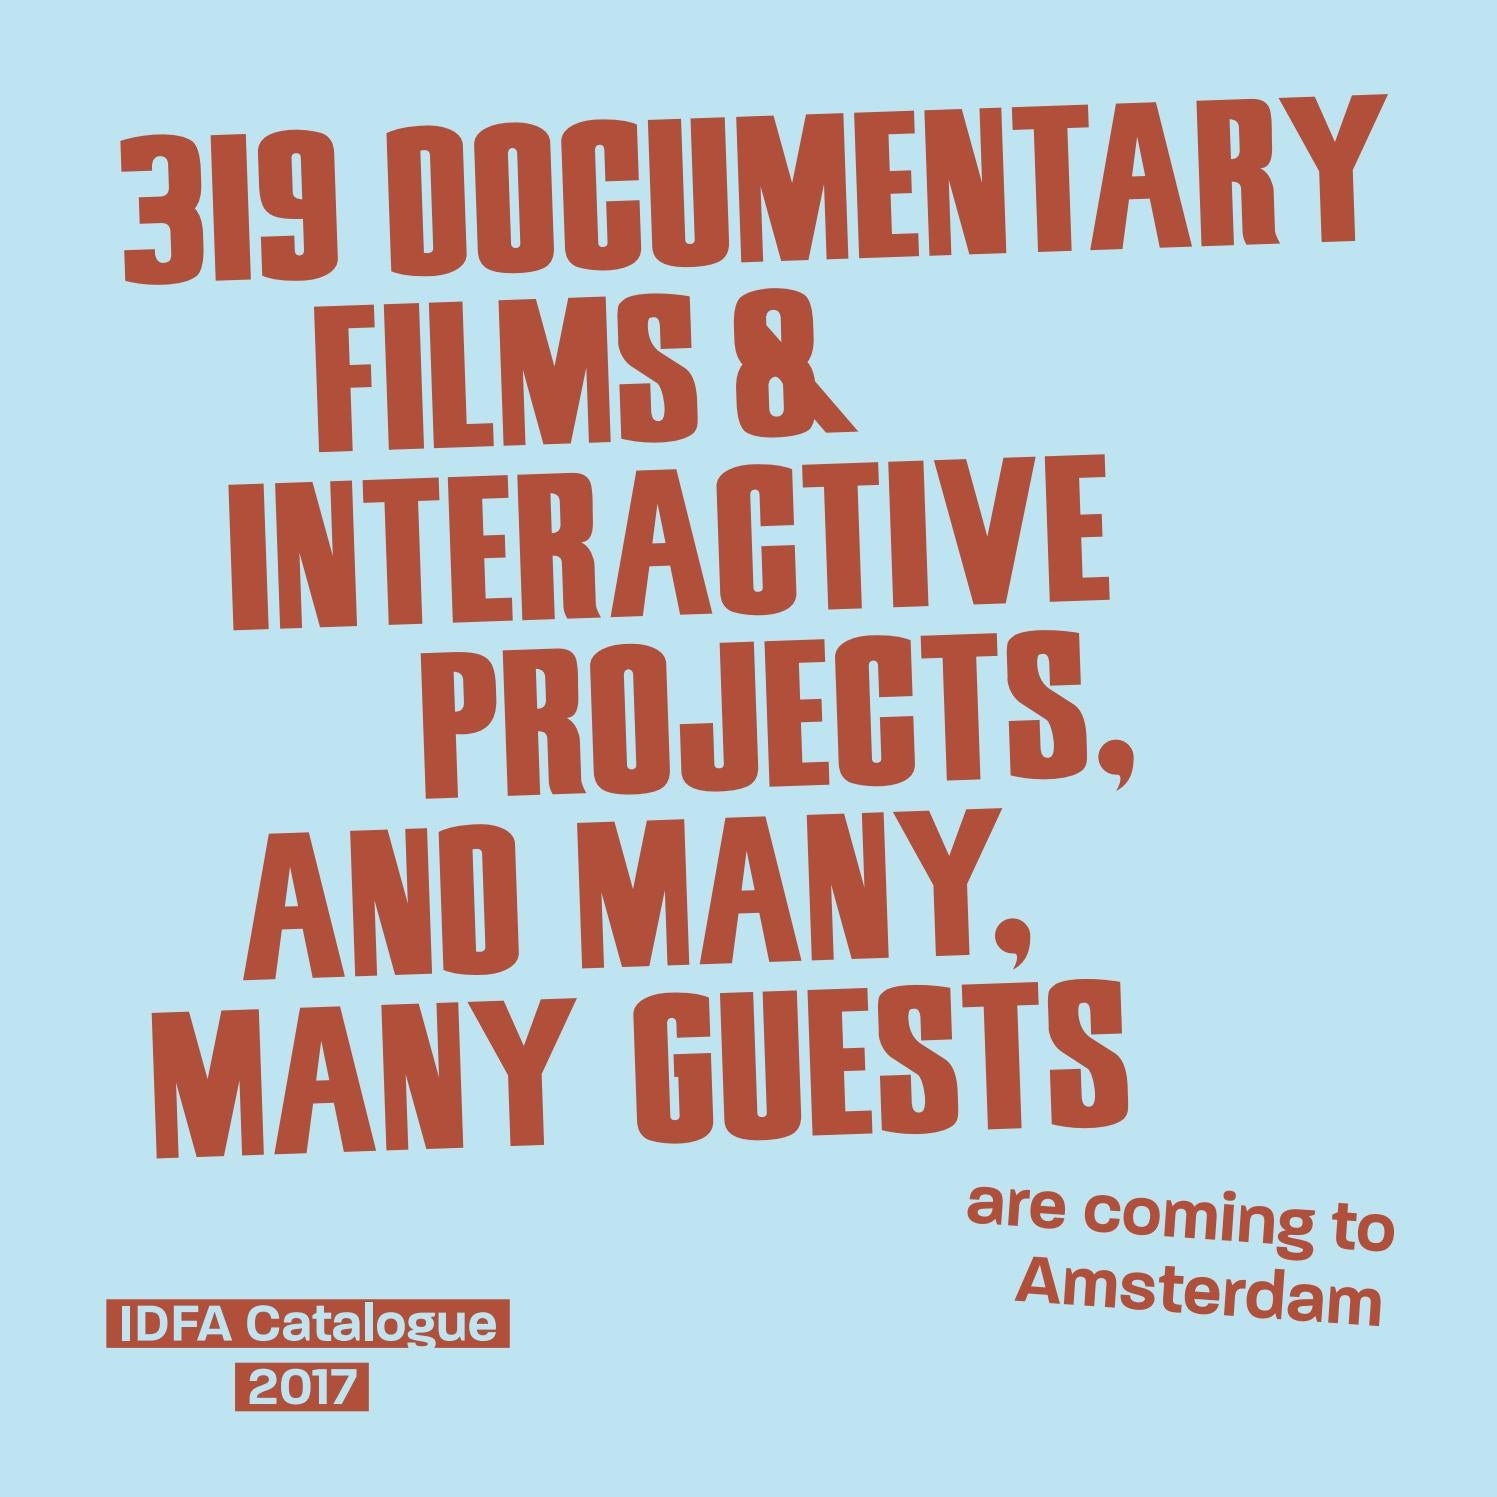 IDFA Catalogue 2017 by IDFA International Documentary Film Festival  Amsterdam - issuu 631c65169